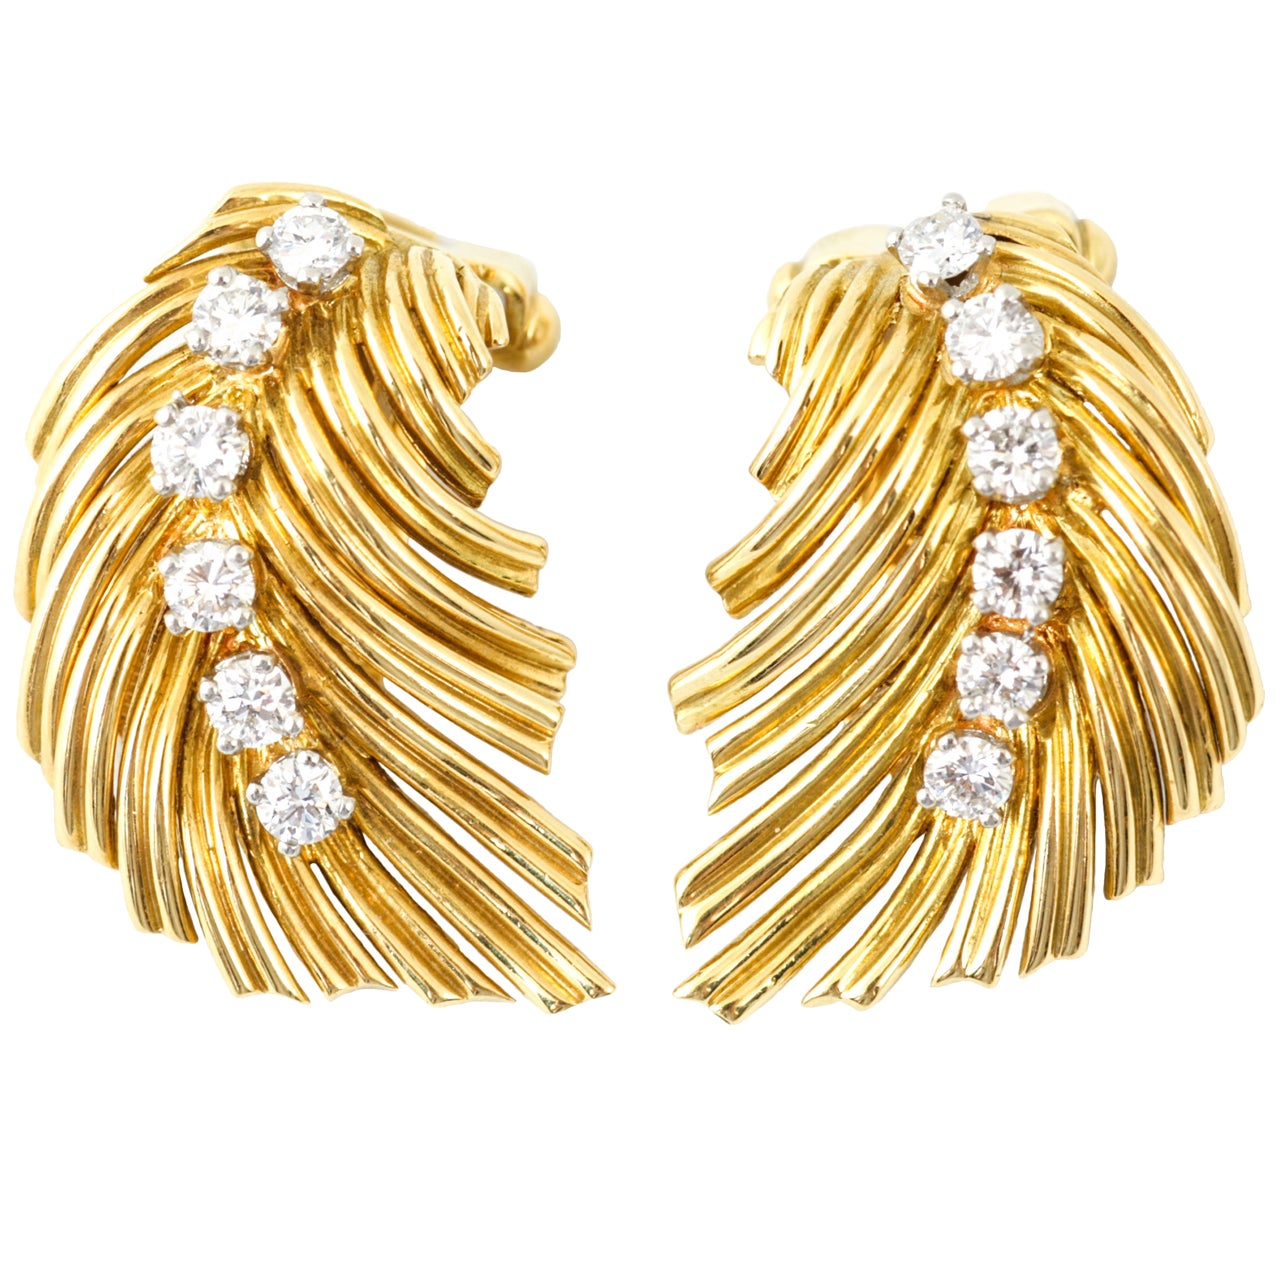 Van Cleef & Arpels Diamond Gold Leaf Clip Earrings